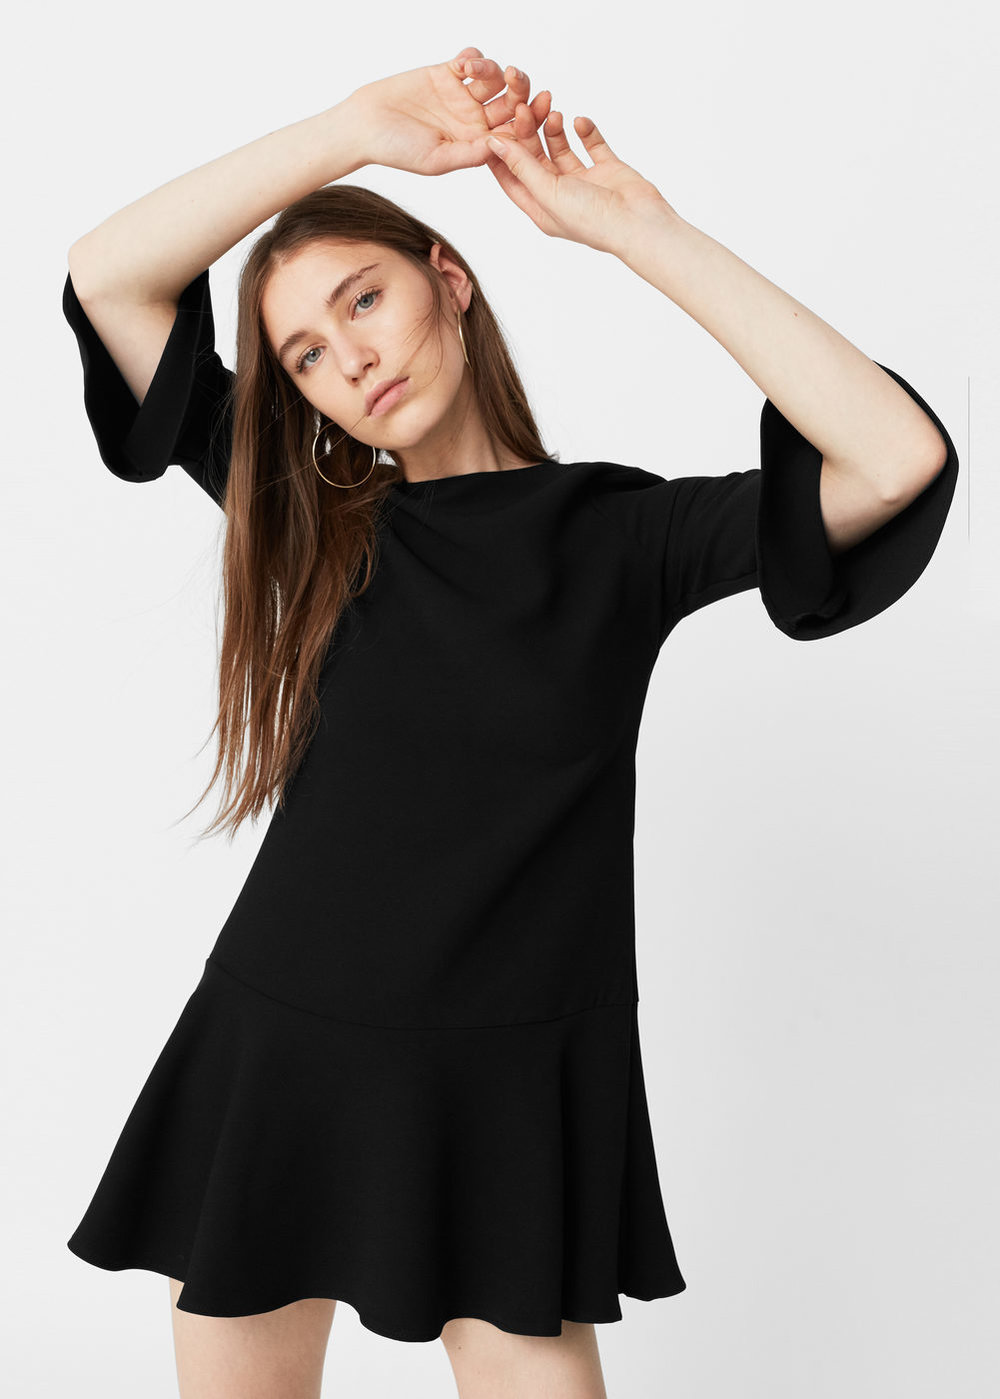 Ok so I'm kind of obsessed with the fit of   this dress   and the ruffles of the flared sleeve and bottom. This would be great for work or going out.